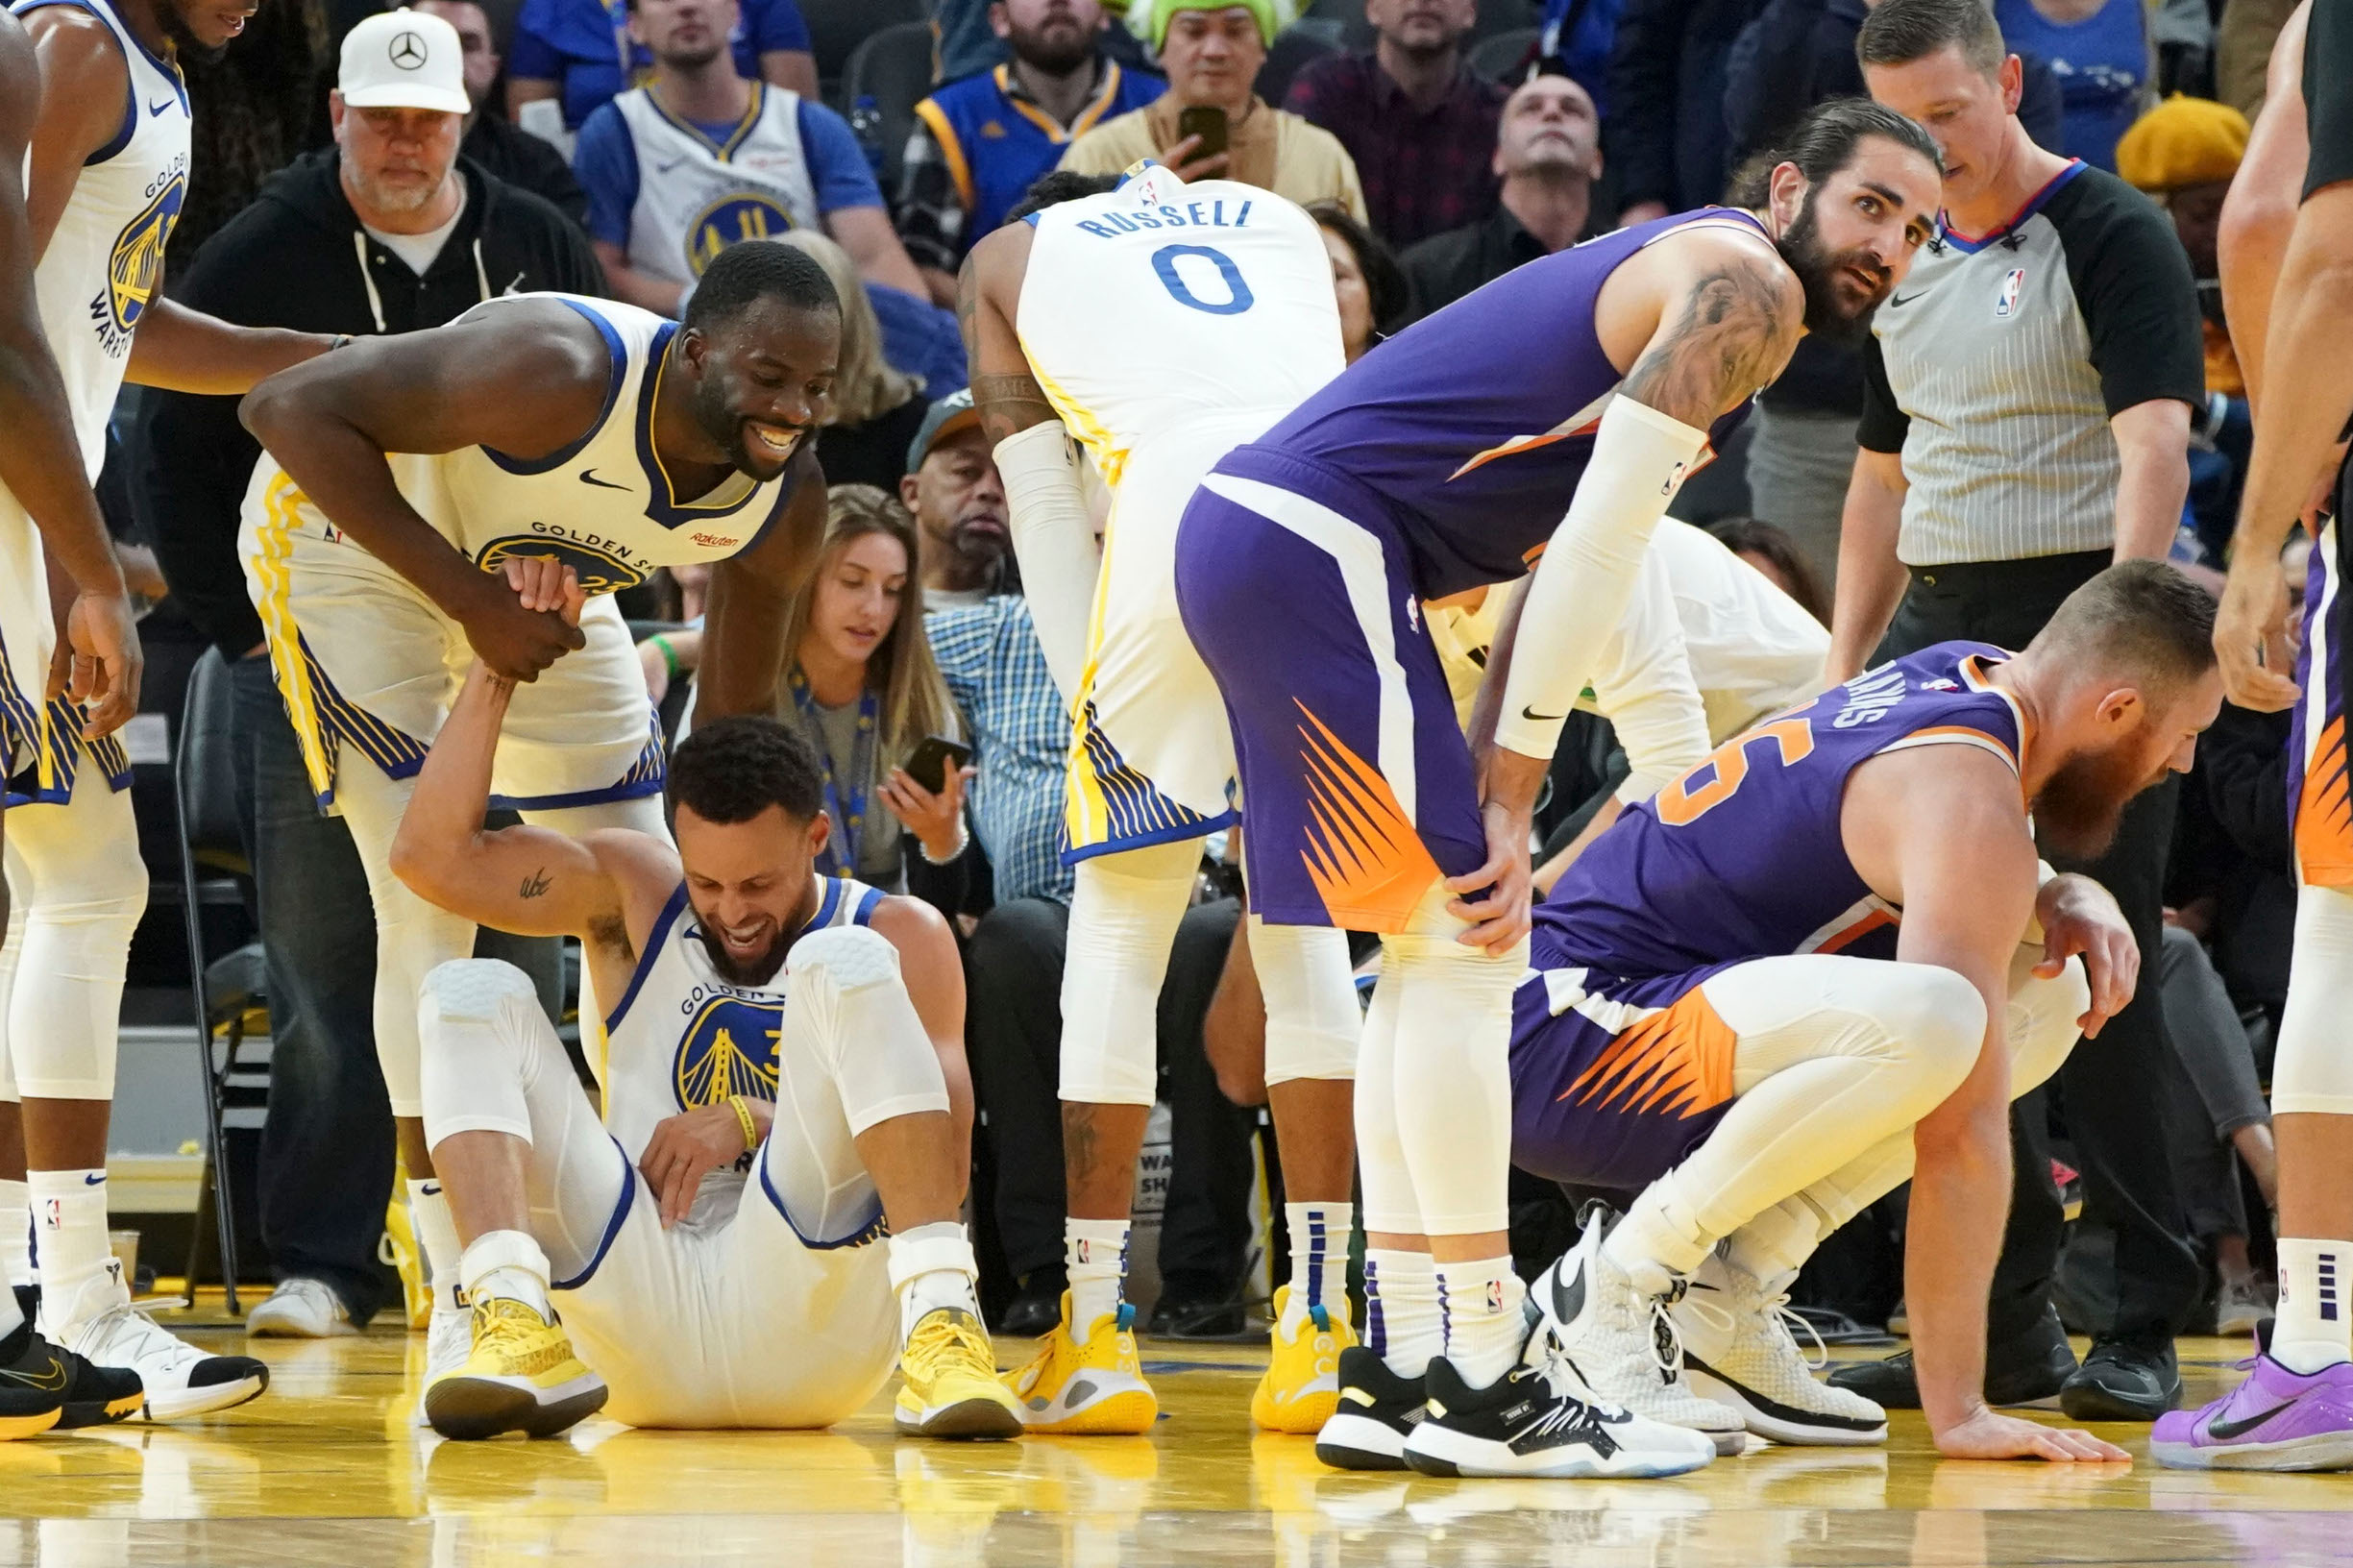 2019-10-31T051128Z_291092317_NOCID_RTRMADP_3_NBA-PHOENIX-SUNS-AT-GOLDEN-STATE-WARRIORS